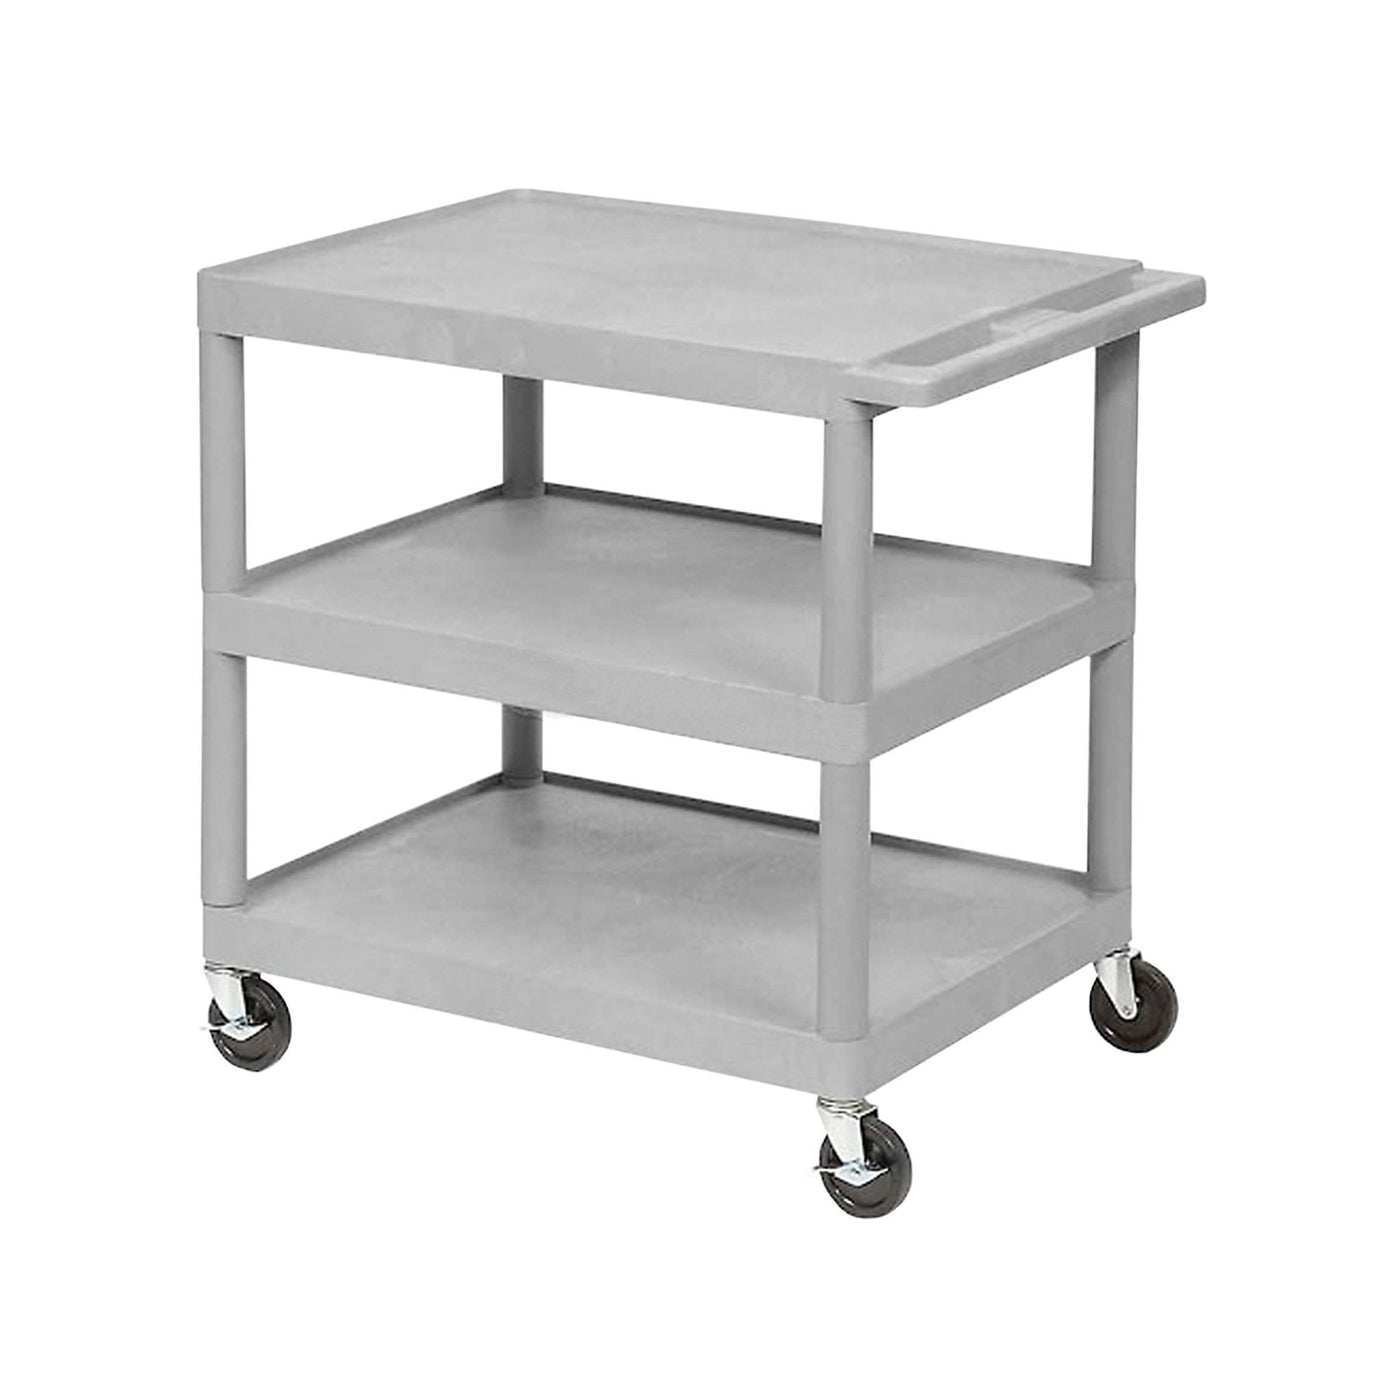 Plastic Utility Trucks-Laboratory Accessory-Mortech Manufacturing Company Inc. Quality Stainless Steel Autopsy, Morgue, Funeral Home, Necropsy, Veterinary / Anatomy, Dissection Equipment and Accessories